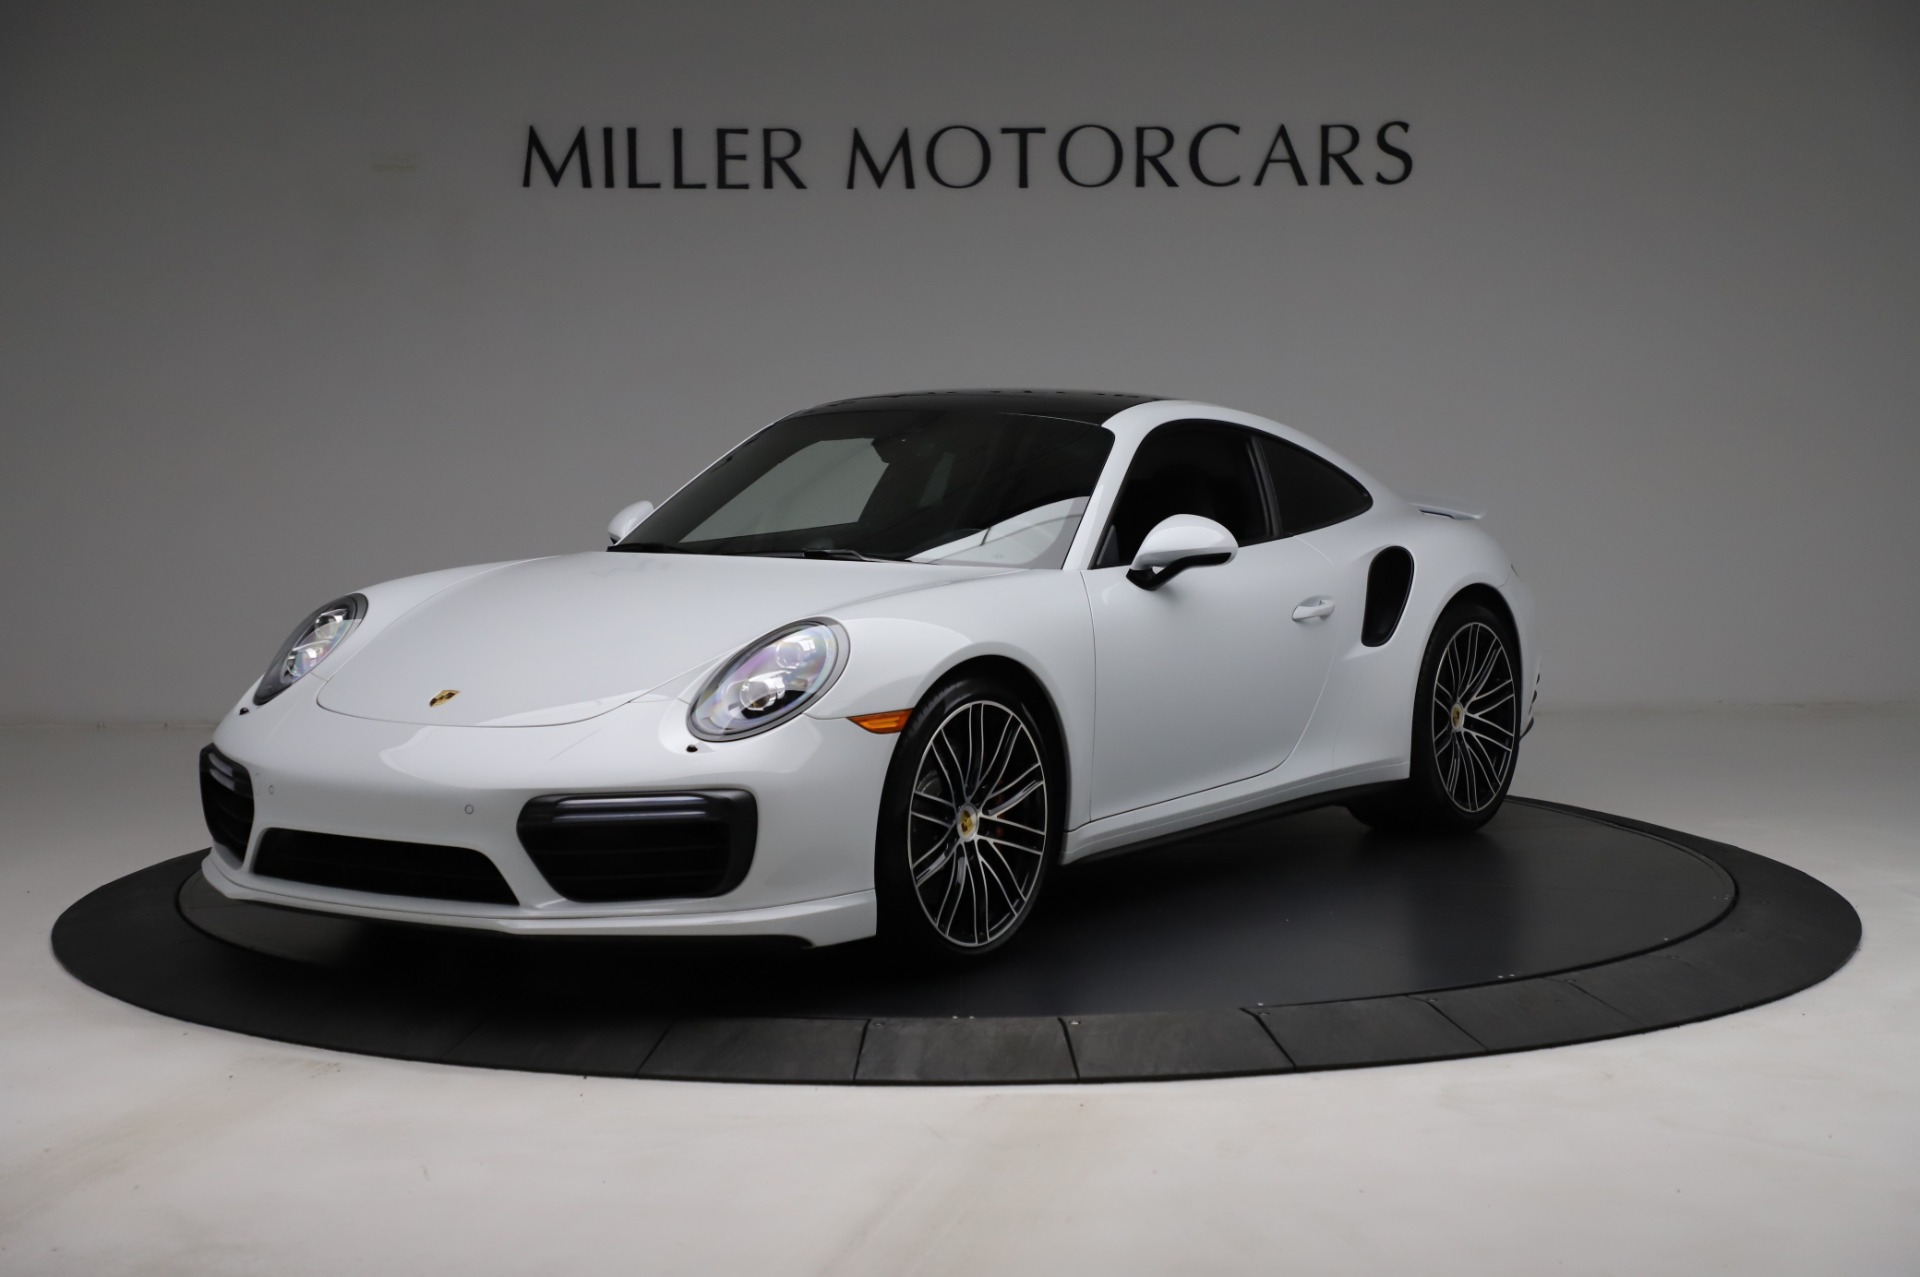 Used 2018 Porsche 911 Turbo for sale $159,990 at Bentley Greenwich in Greenwich CT 06830 1